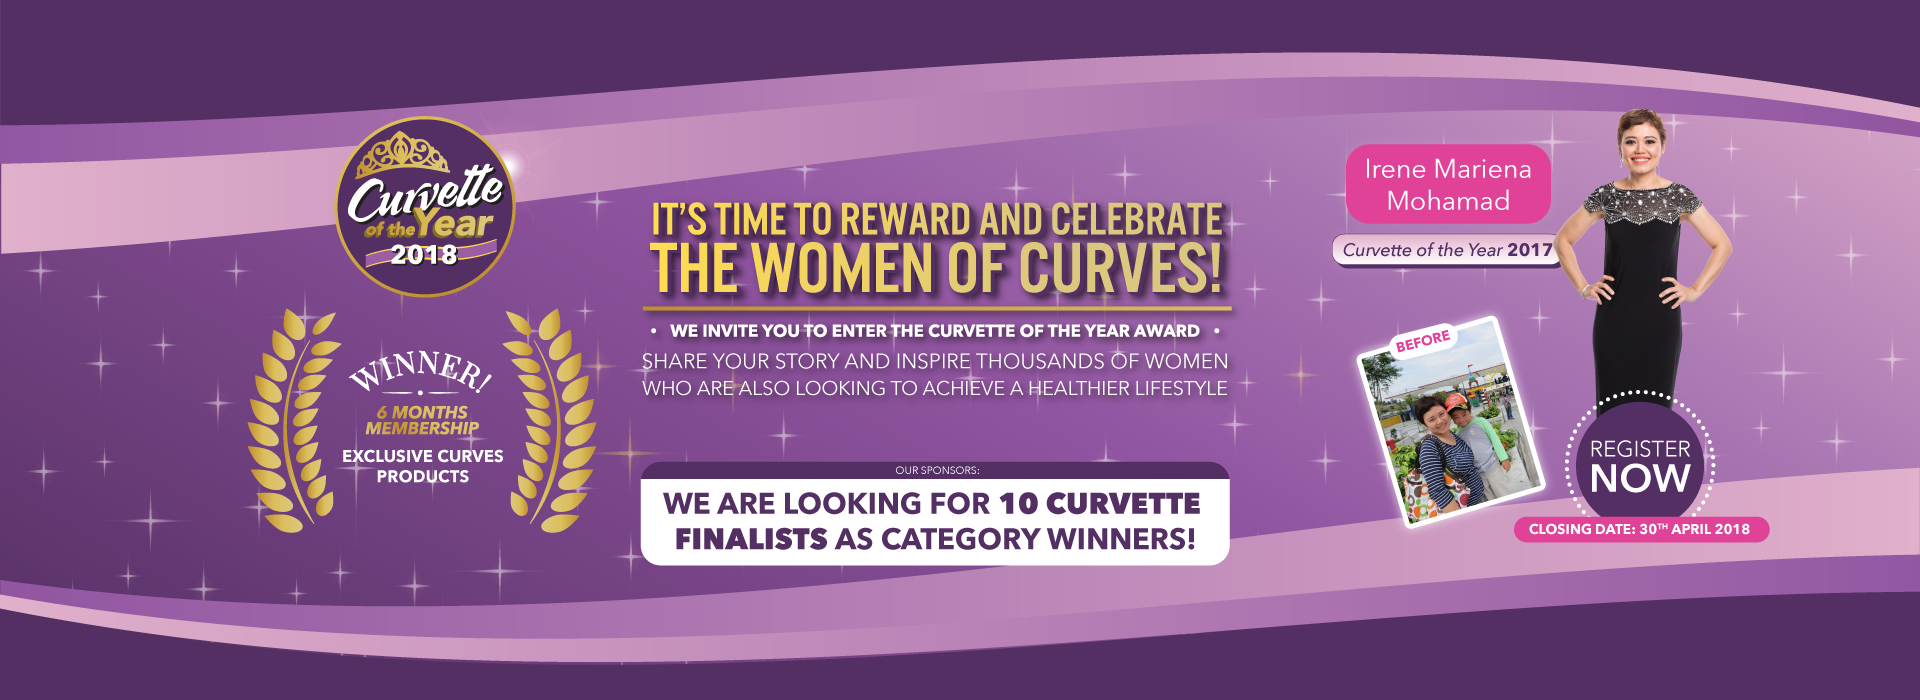 Curvette-of-the-Year-2018-WebBanner_outline